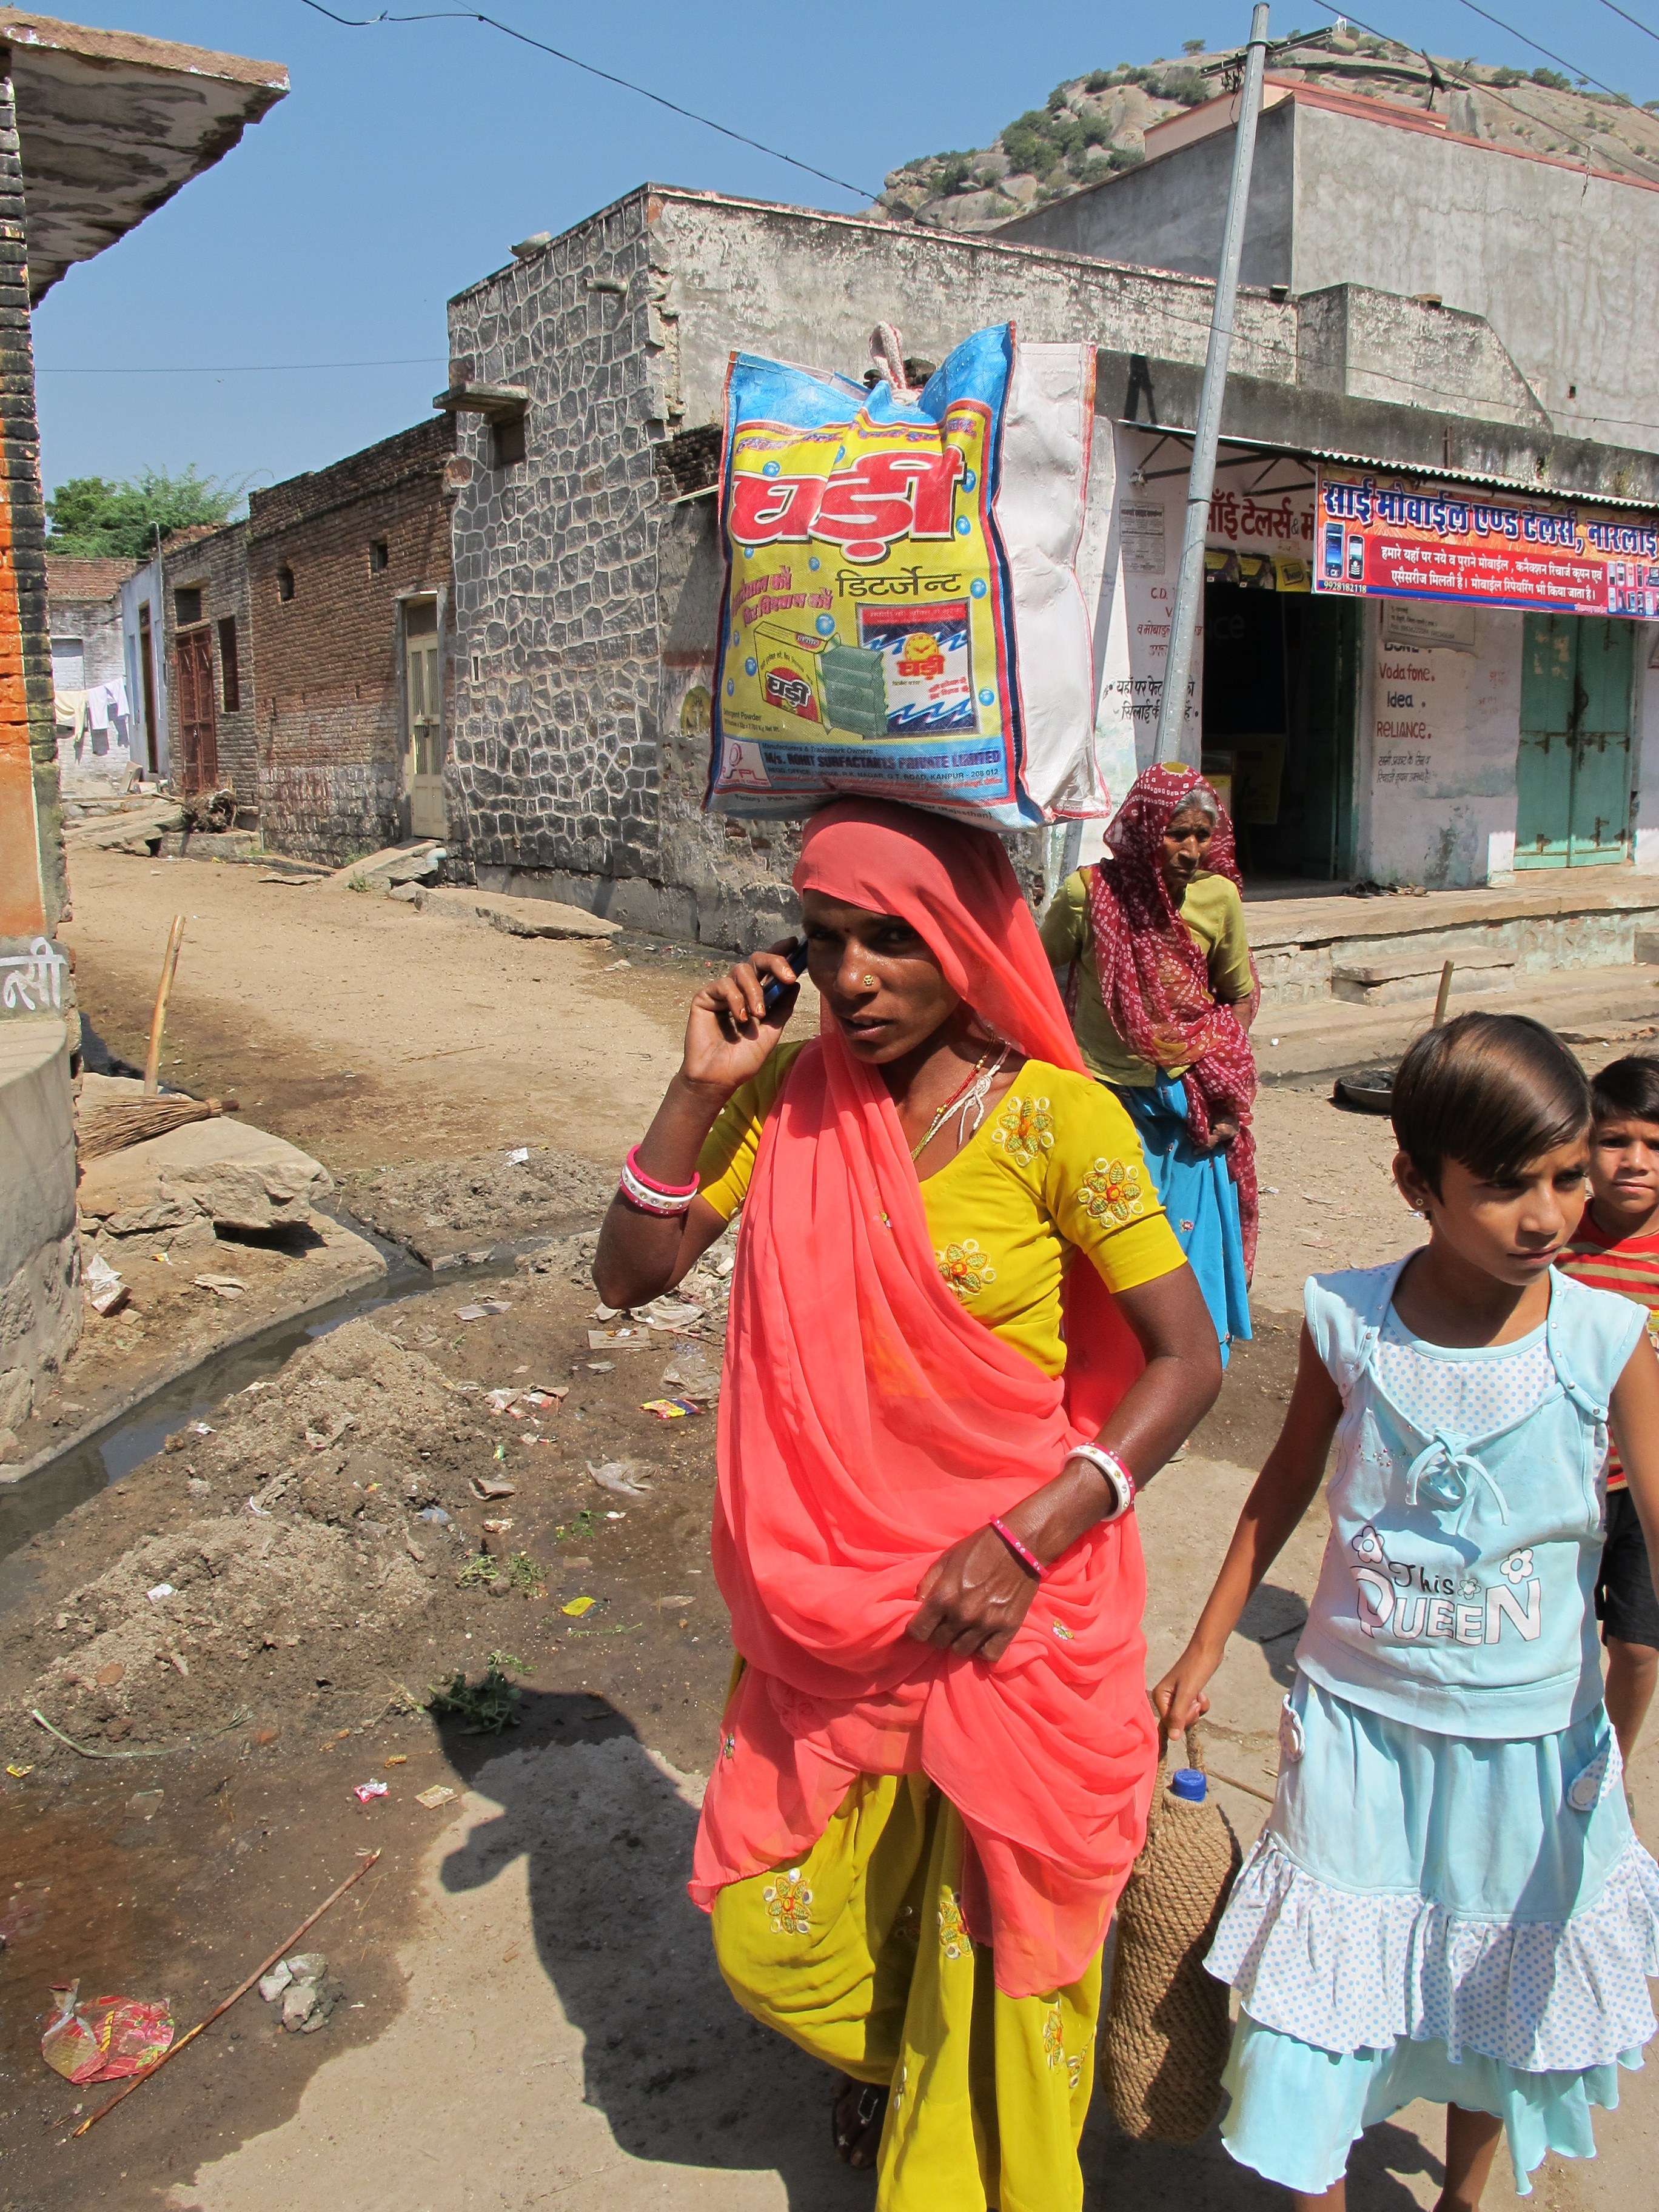 Woman in sari with cell phone - Narlai - India